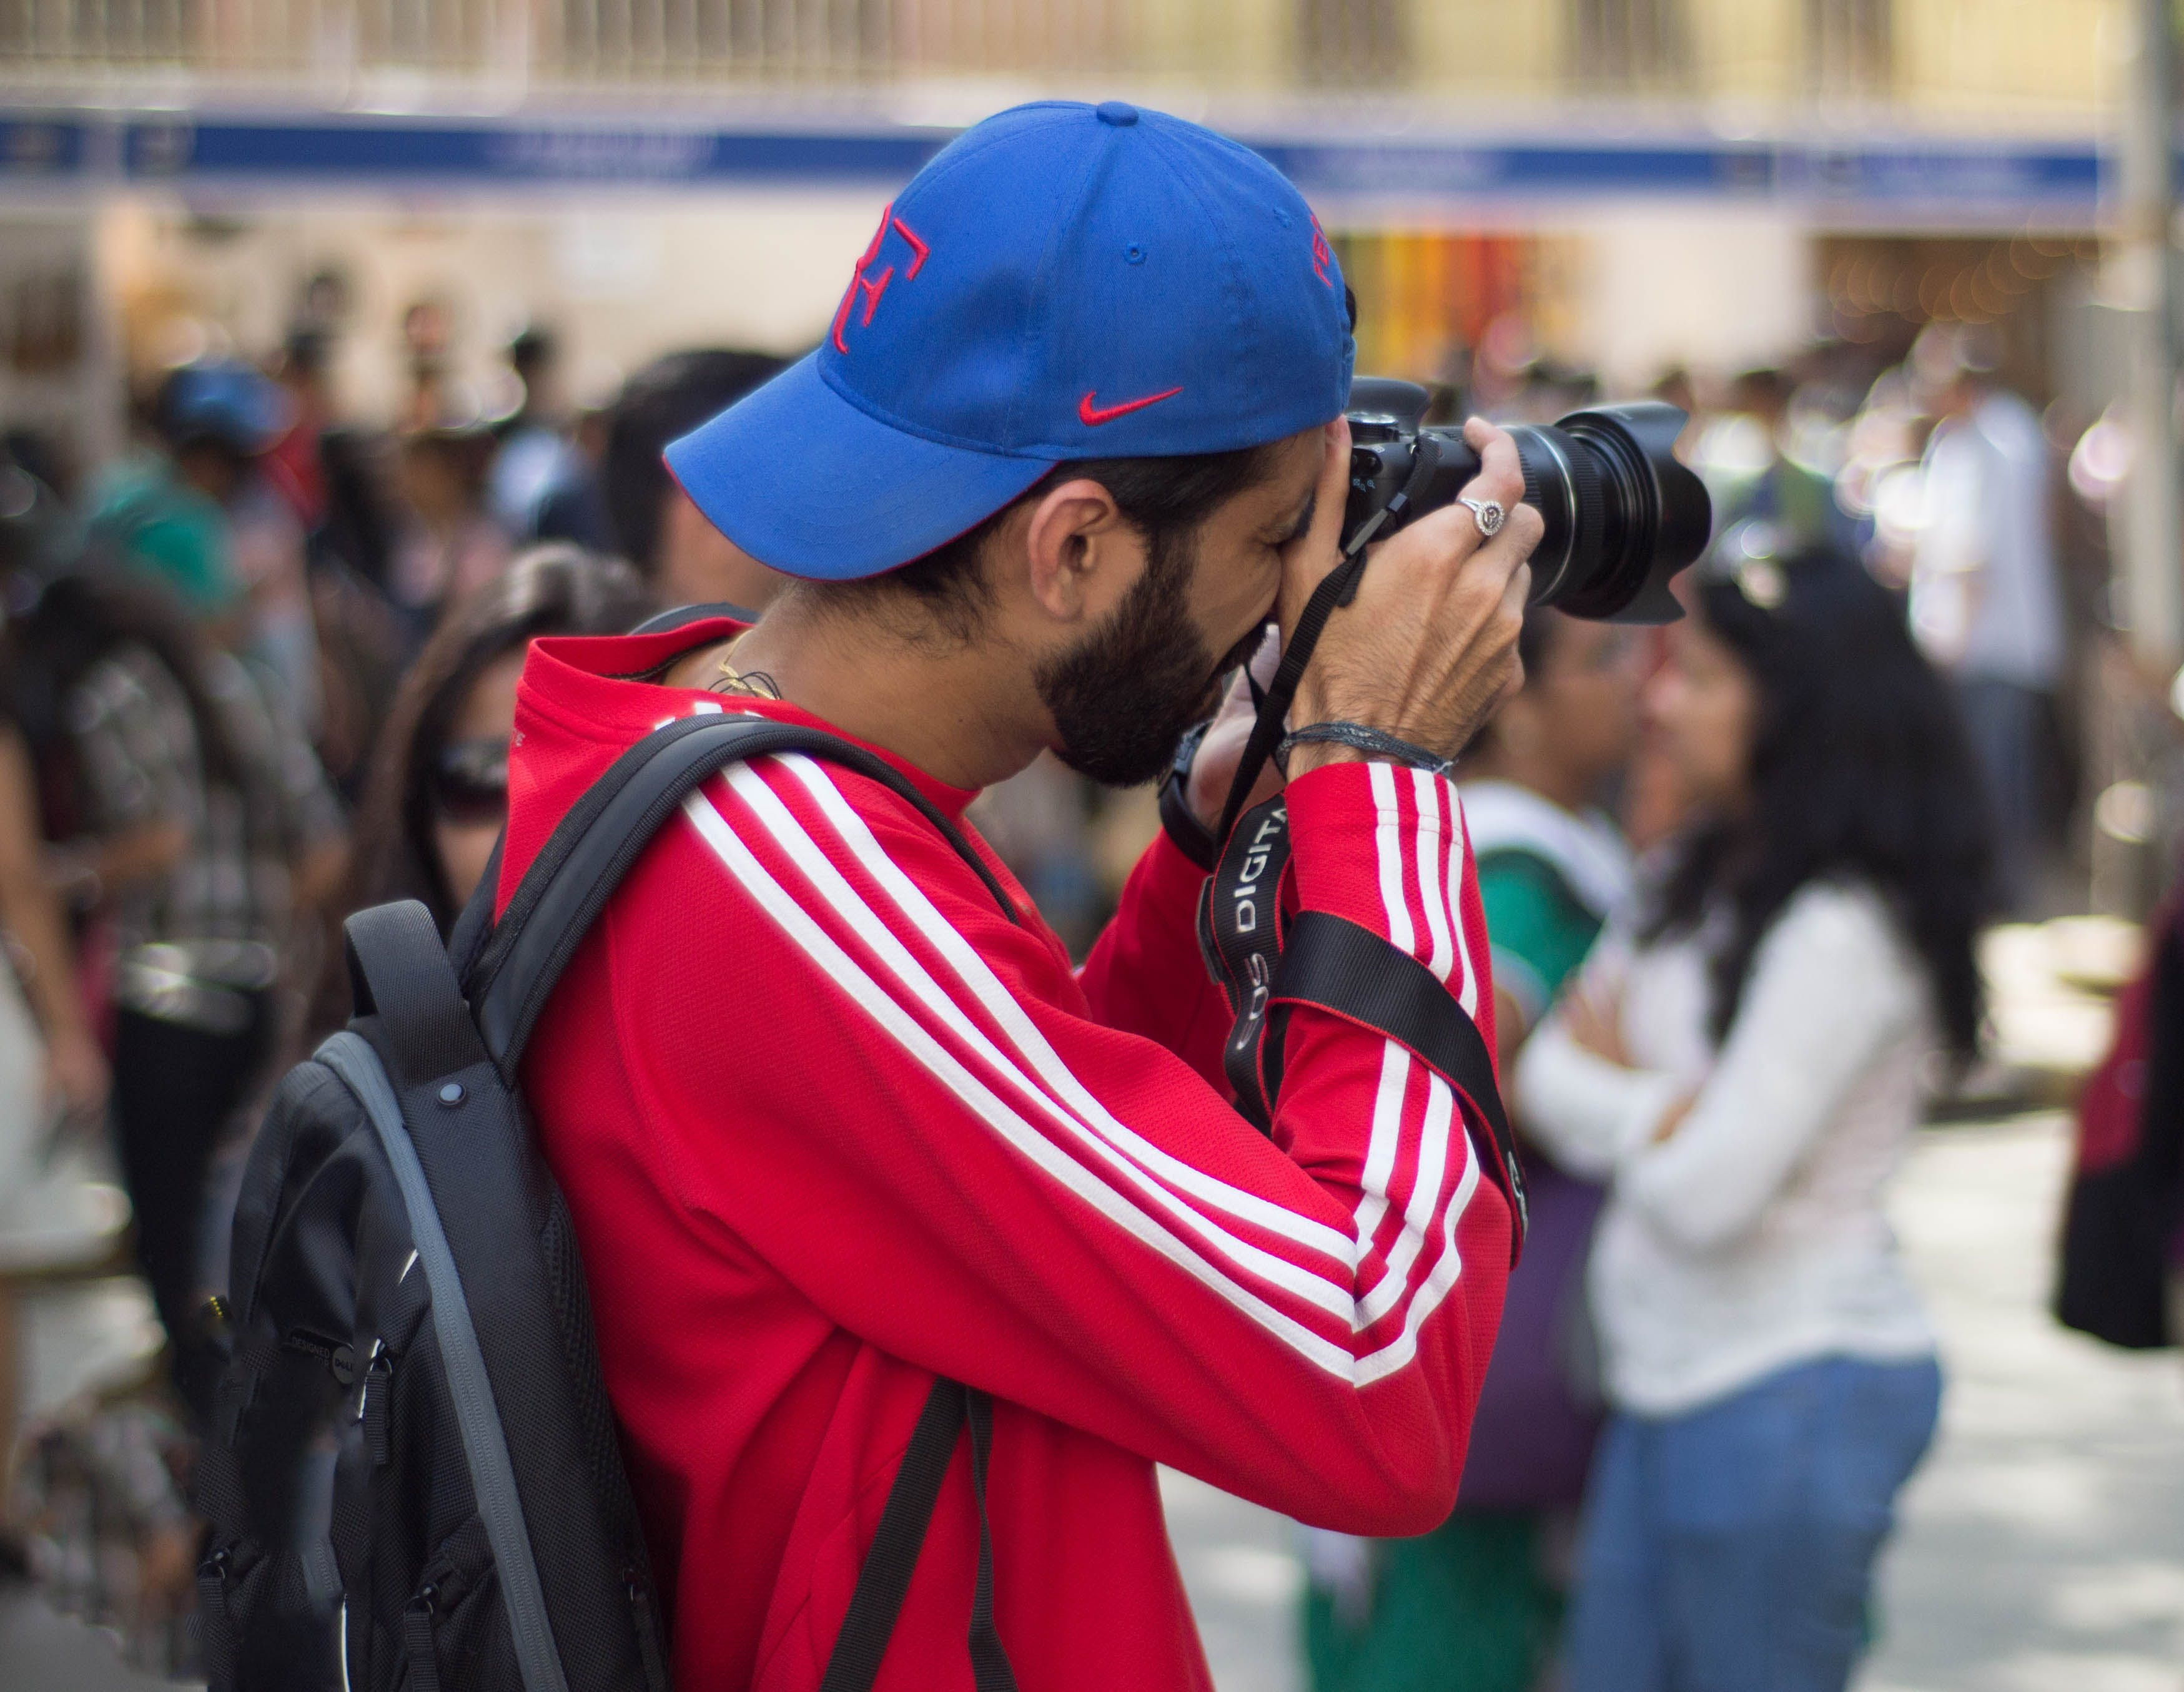 Free stock photo of red, camera, taking photo, blue